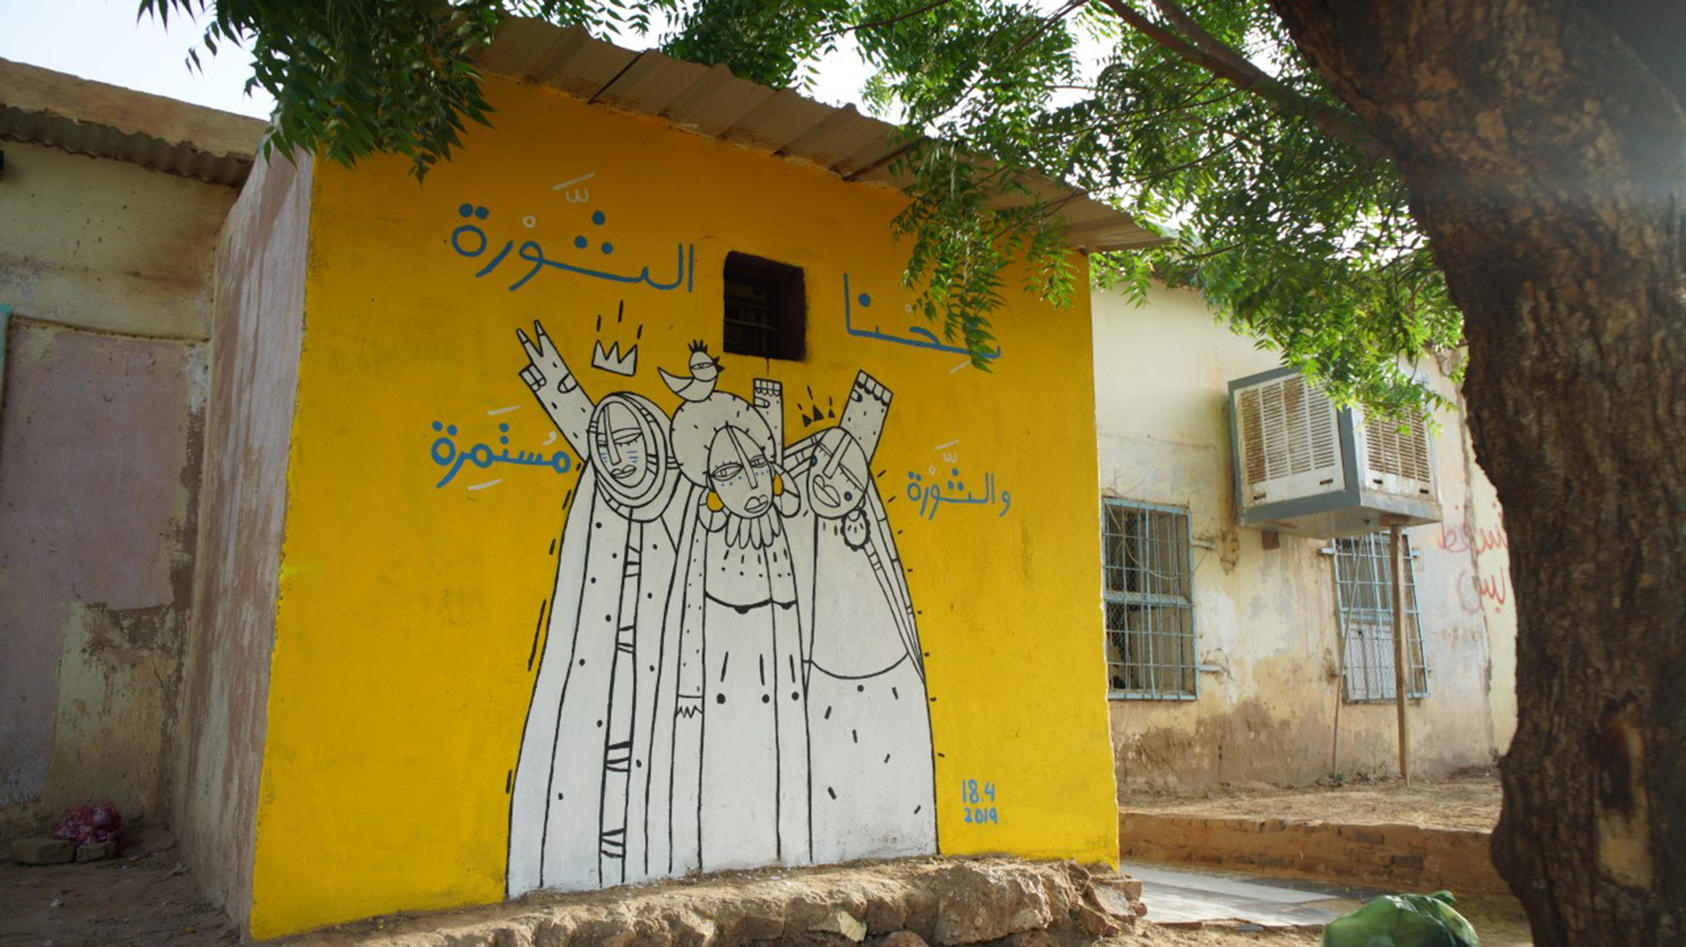 Alaa Satir painted this mural in Burri days after the fall of Omar al-Bashir and his immediate successor General Awad Ibn Auf, as protesters continued to demand a transition to civilian rule. (Ahmed Mahmoud)